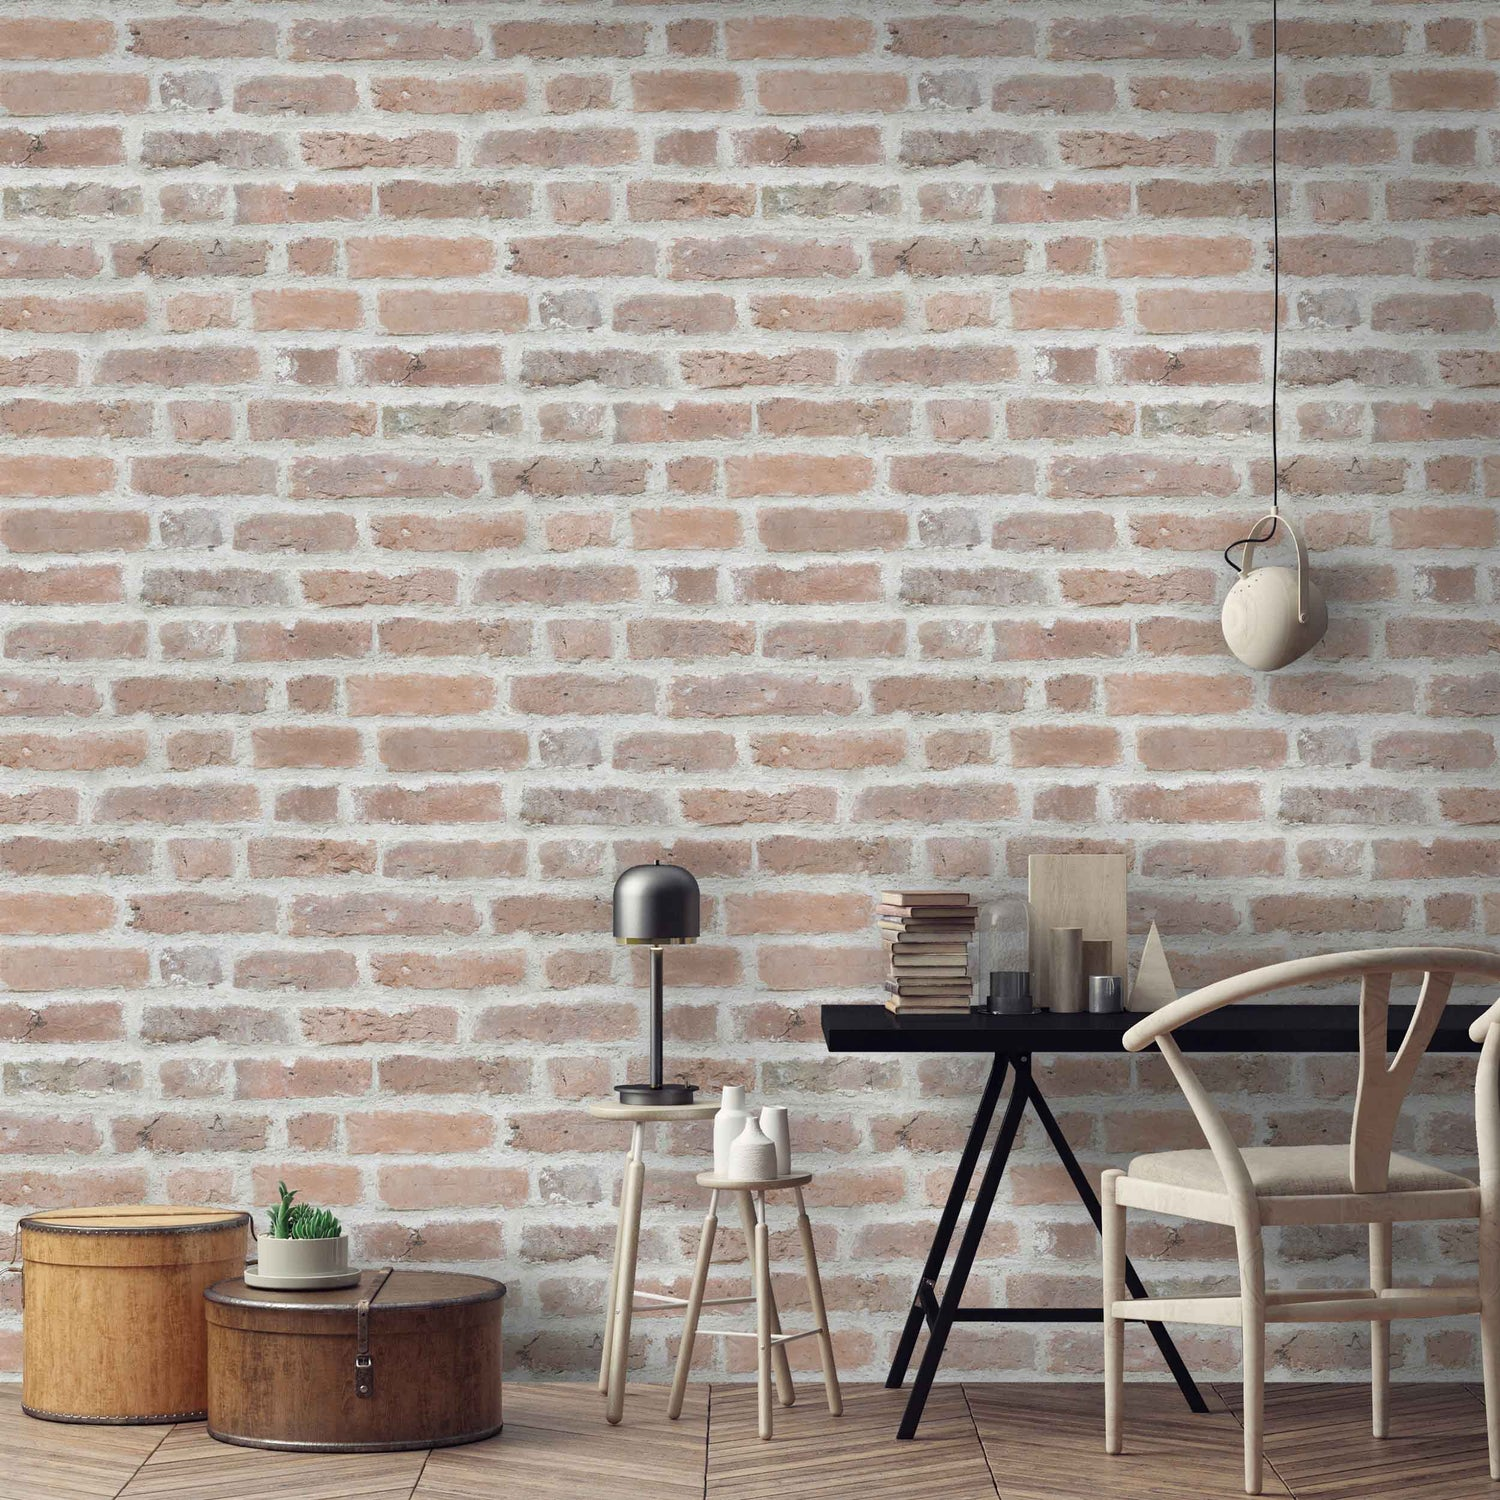 Deansgate Brick Effect Wallpaper by Argent & Ink